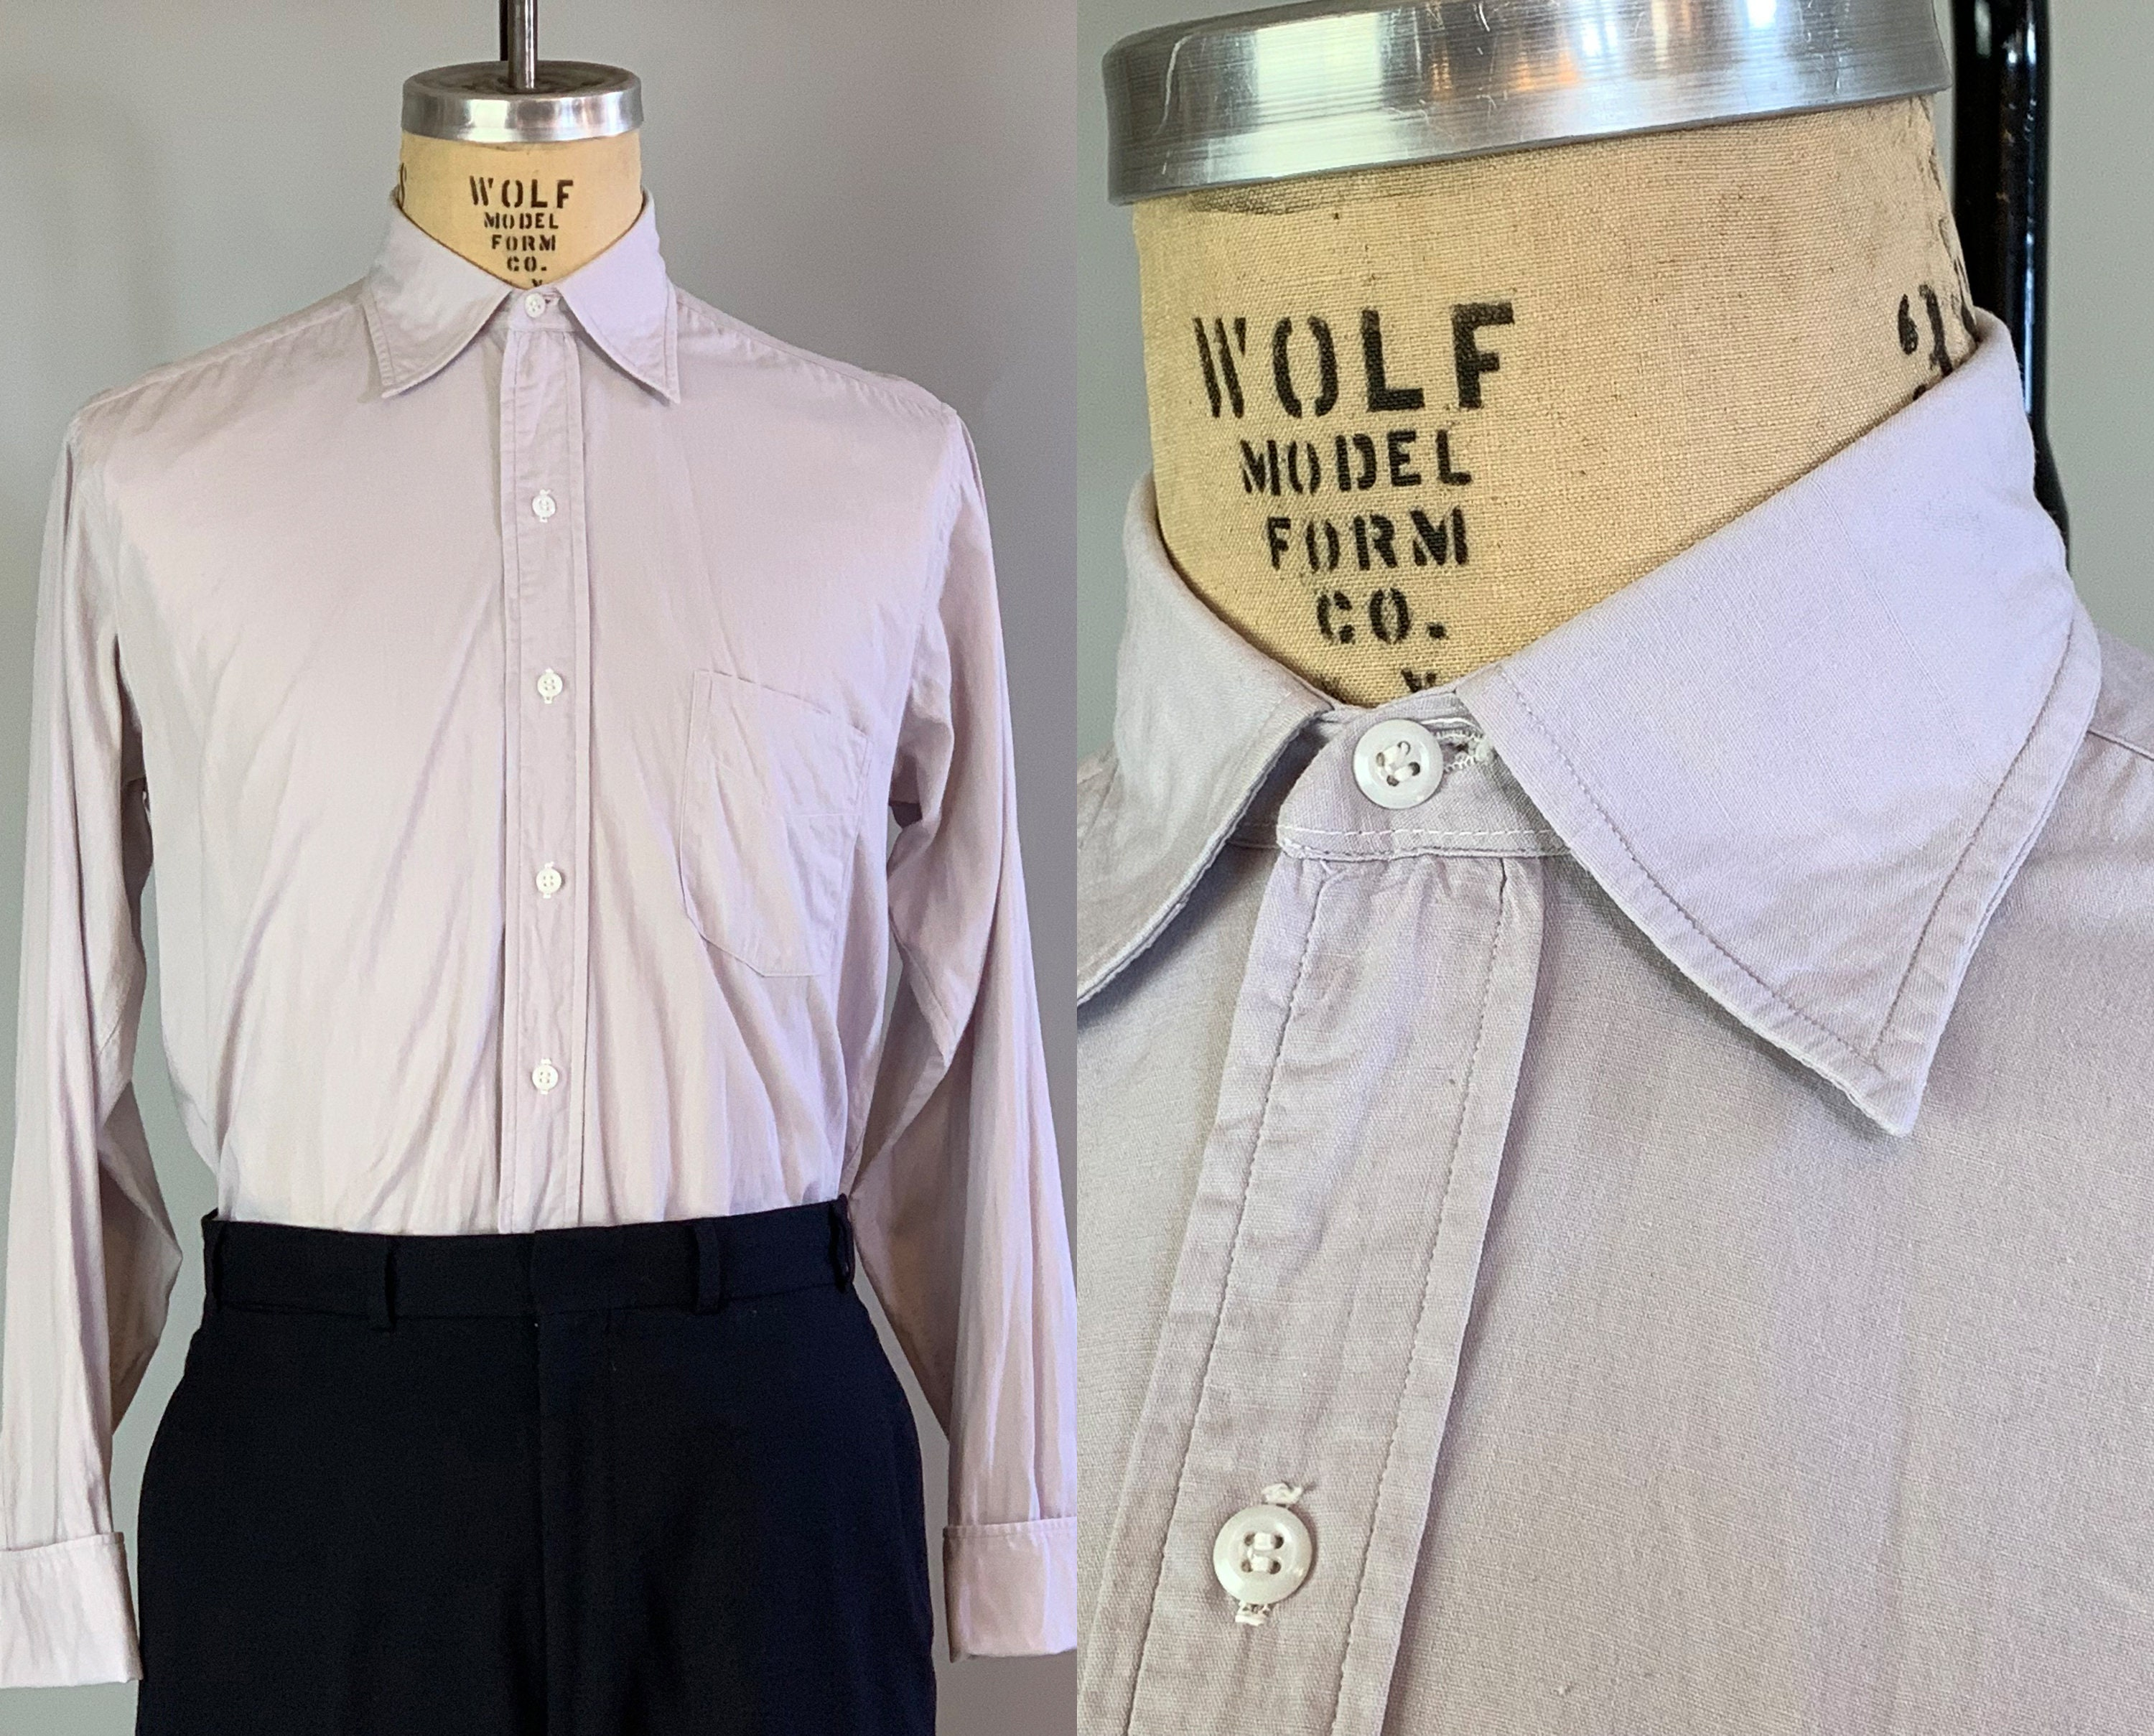 New 1930s Mens Fashion Ties 1930S Spearpoint Collar Oxford  Vintage 30S Mens Light Grey Cotton Shirt From Brent With French Cuffs Size 1533 Medium $22.00 AT vintagedancer.com